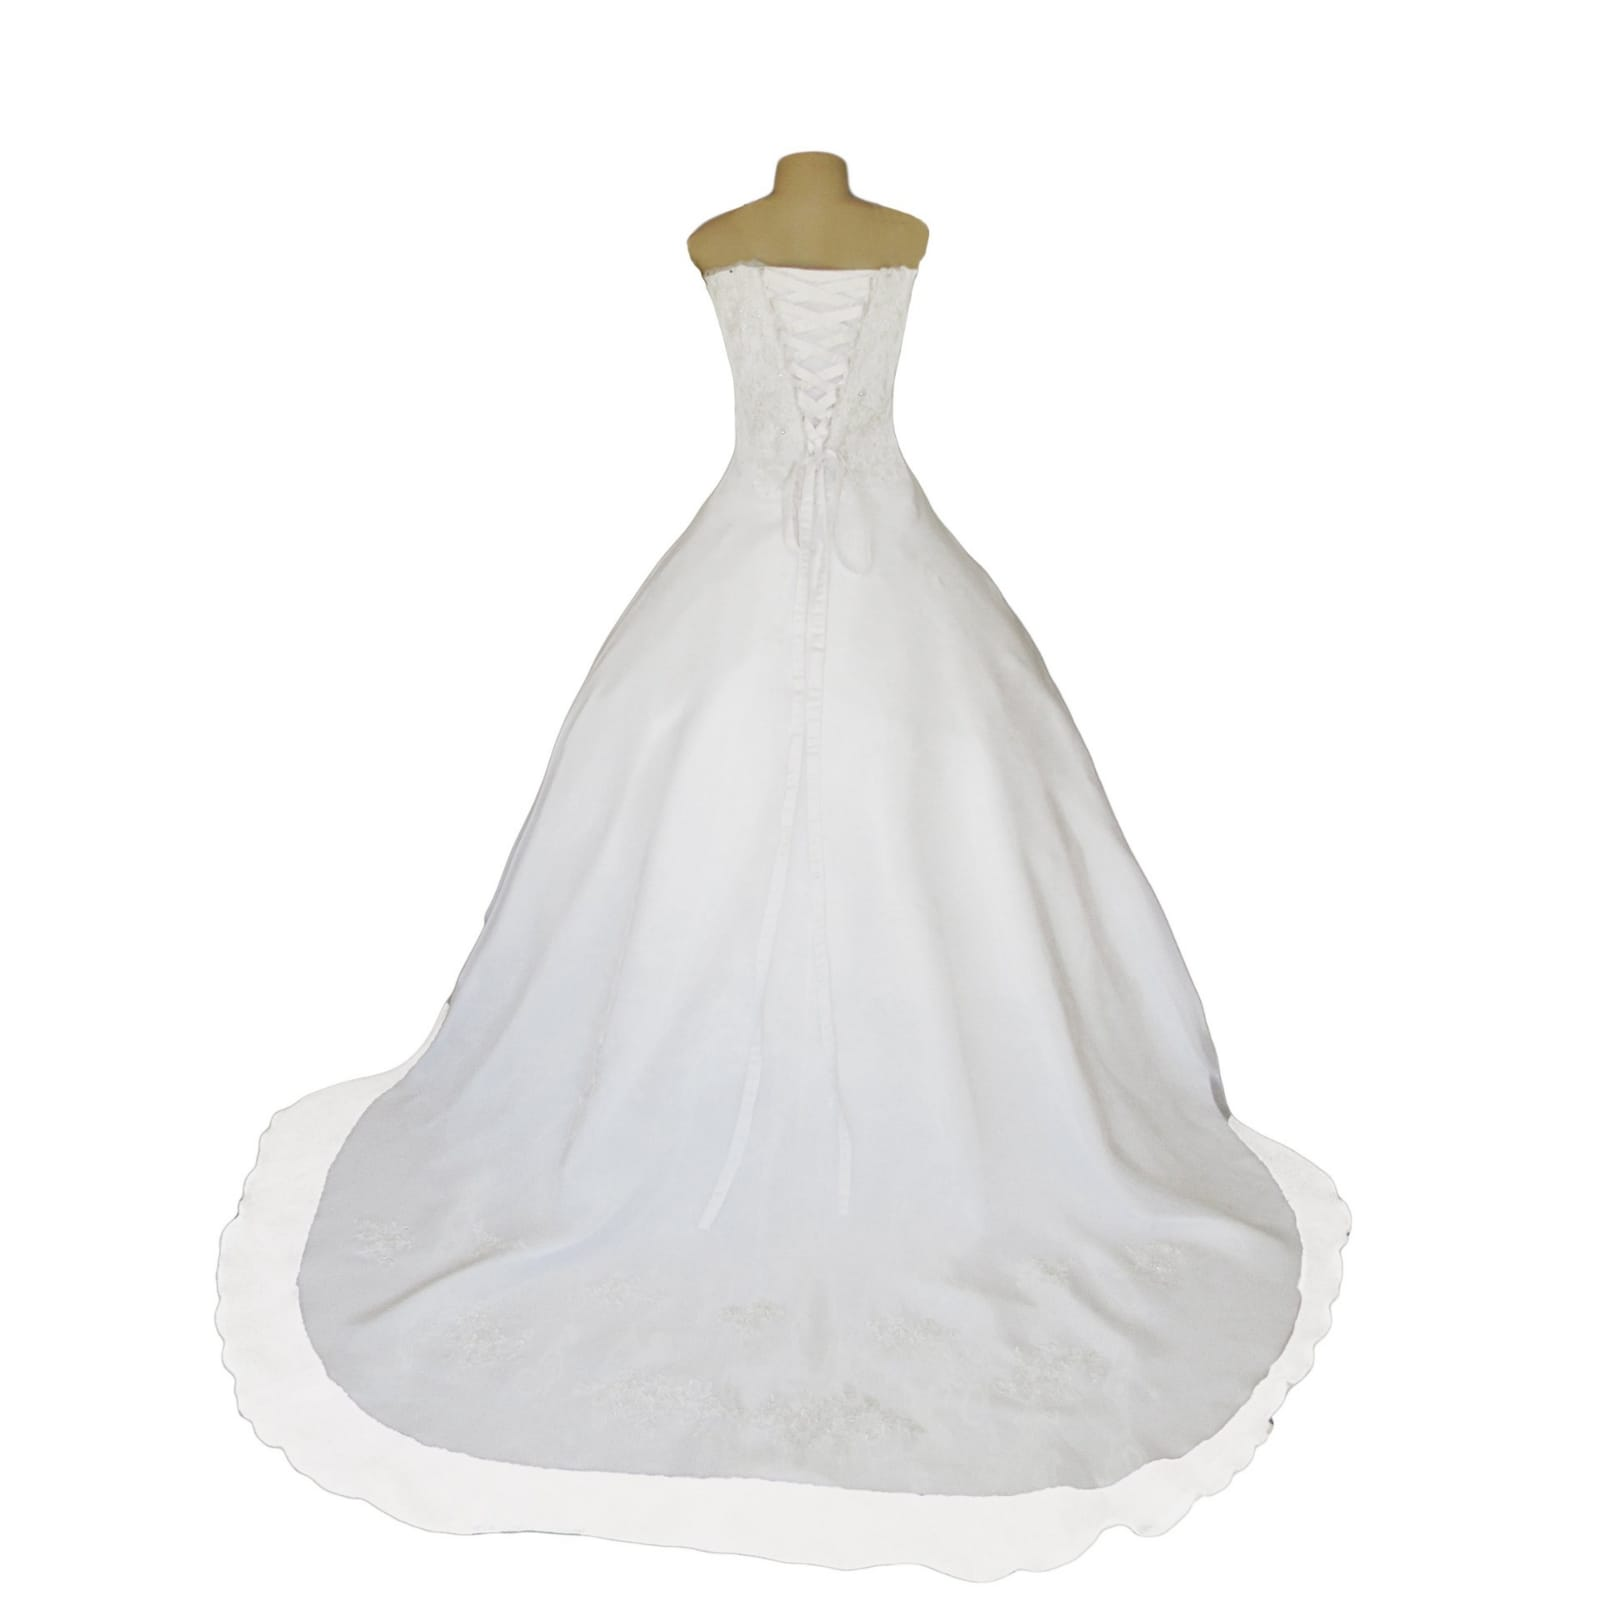 White organza a-line boob tube custom made wedding ball gown 7 white, organza, a-line, boob tube, custom-made wedding ball gown. Bodice detailed with lace. Lace-up back. With a train & removable off-shoulder pleated organza straps detailed with lace. With shimmer blush length veil.